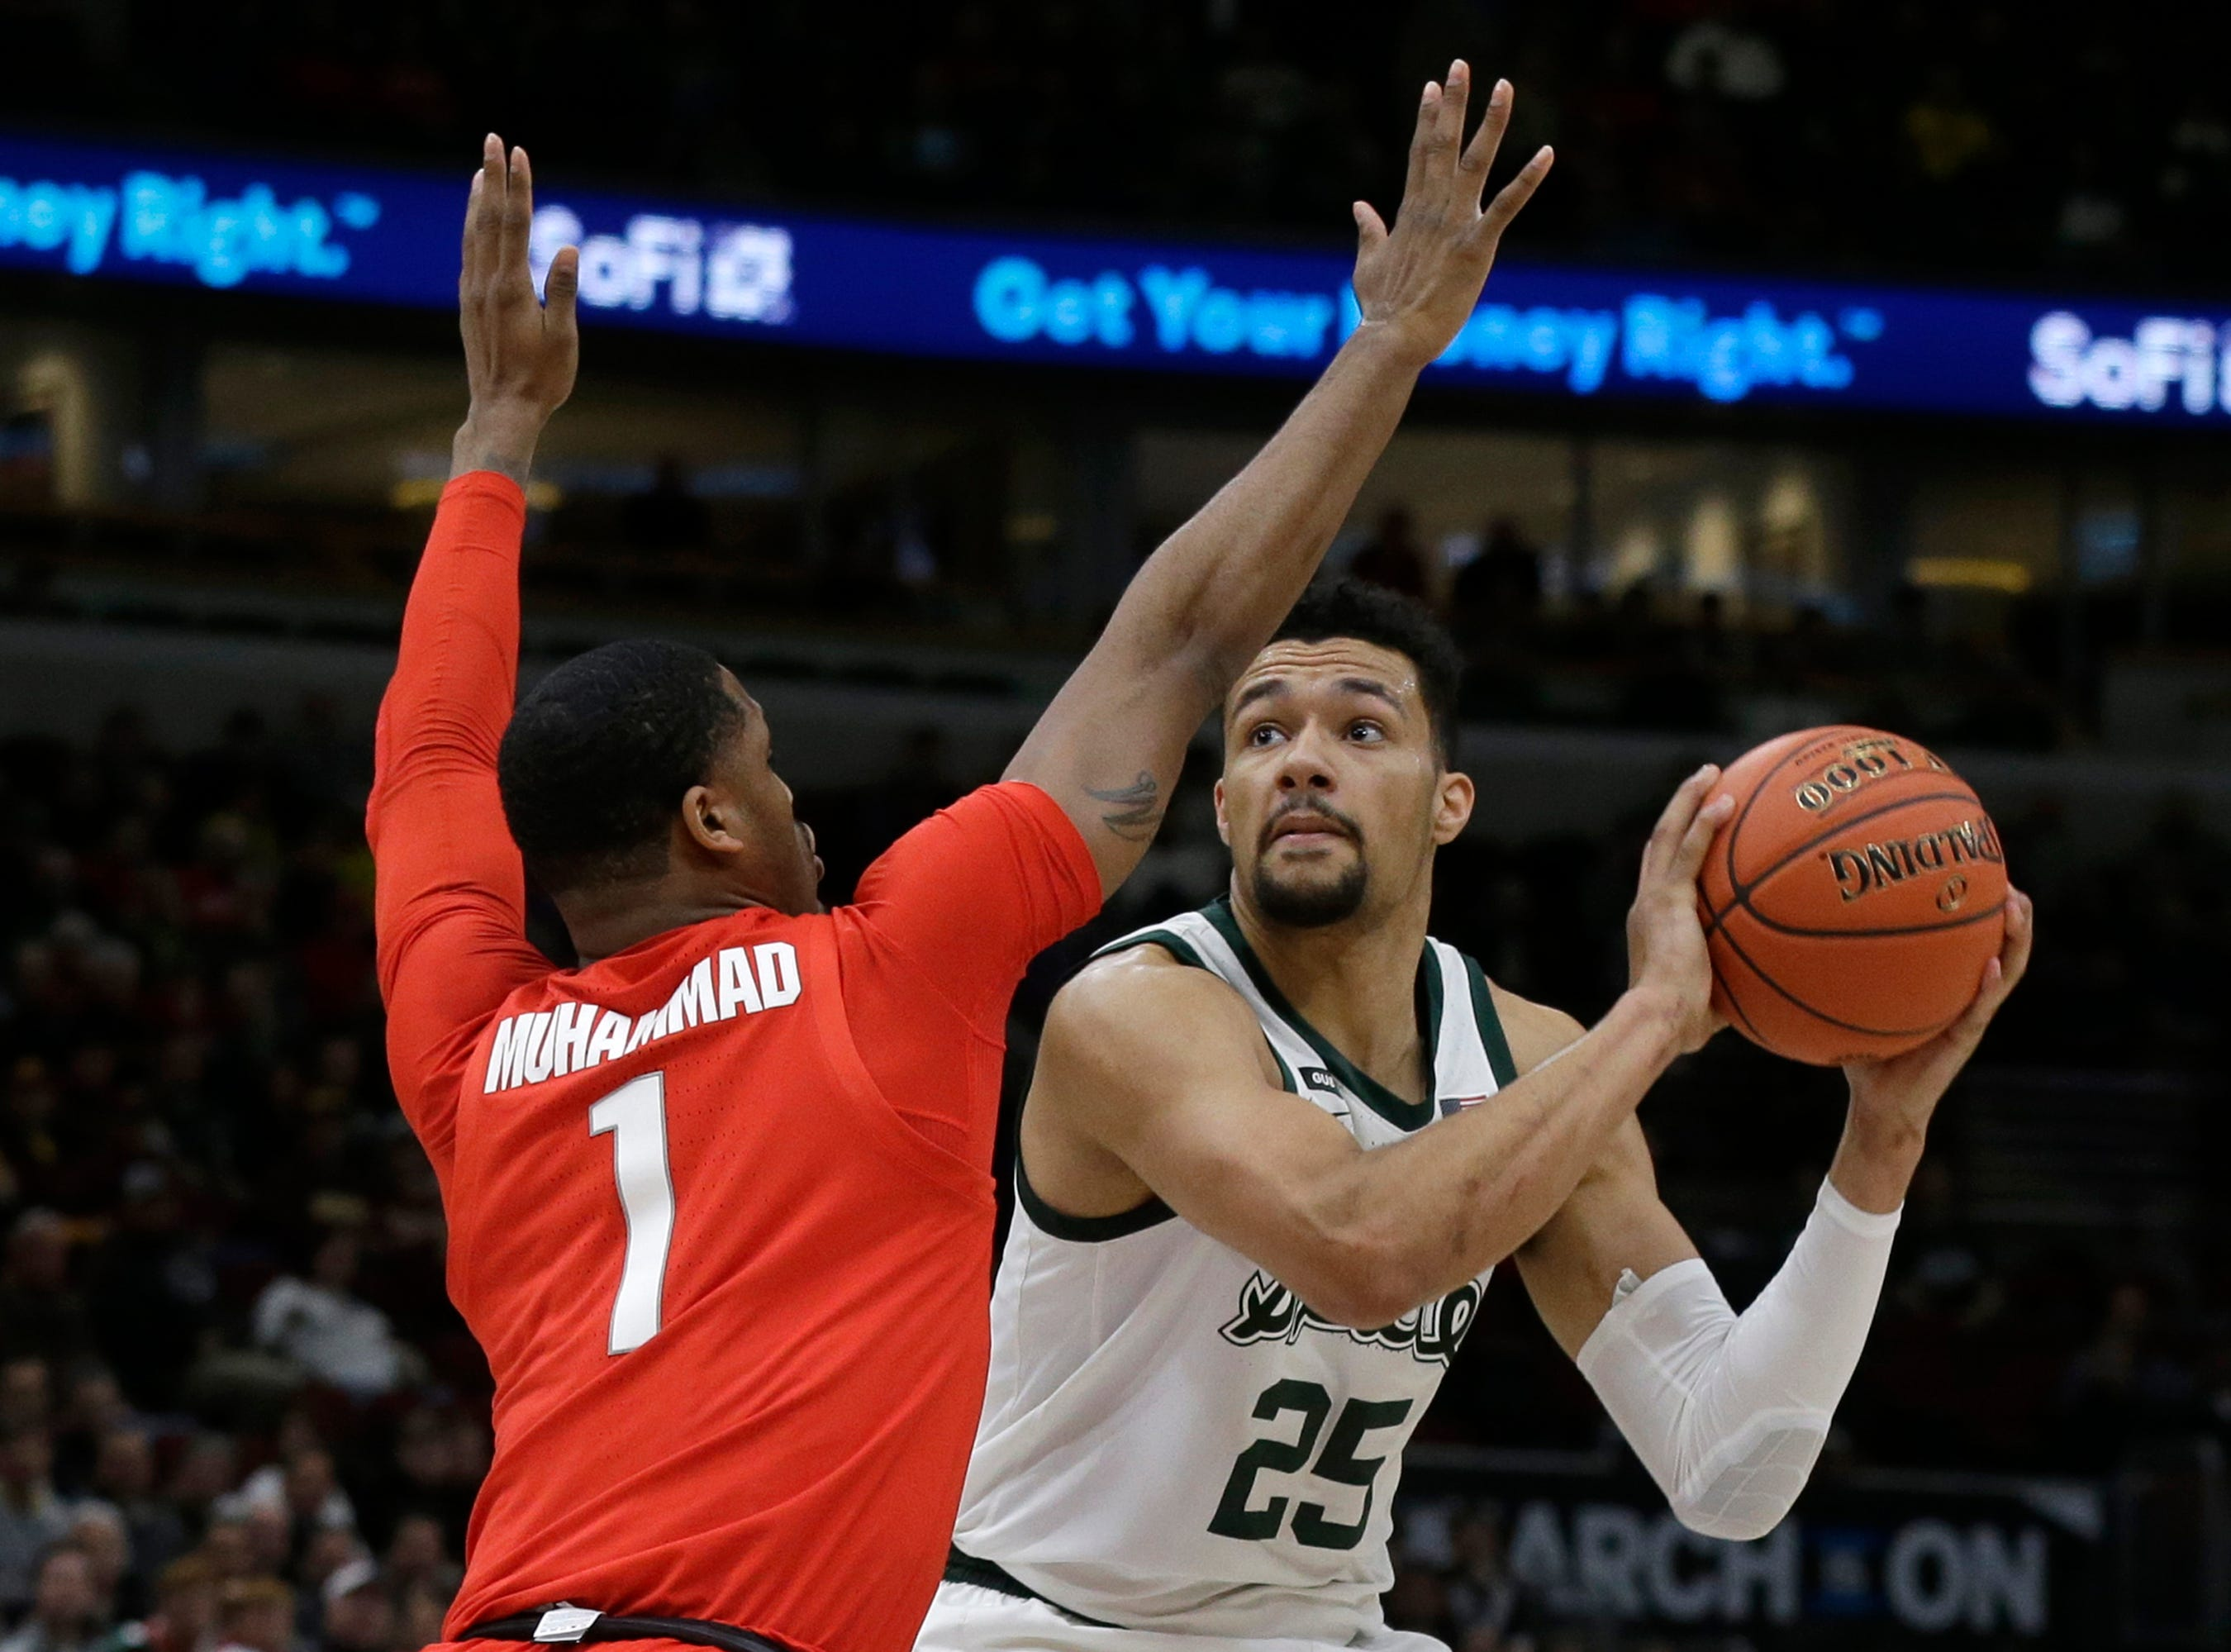 Michigan State's Kenny Goins (25) drives against Ohio State's Luther Muhammad (1) during the first half.